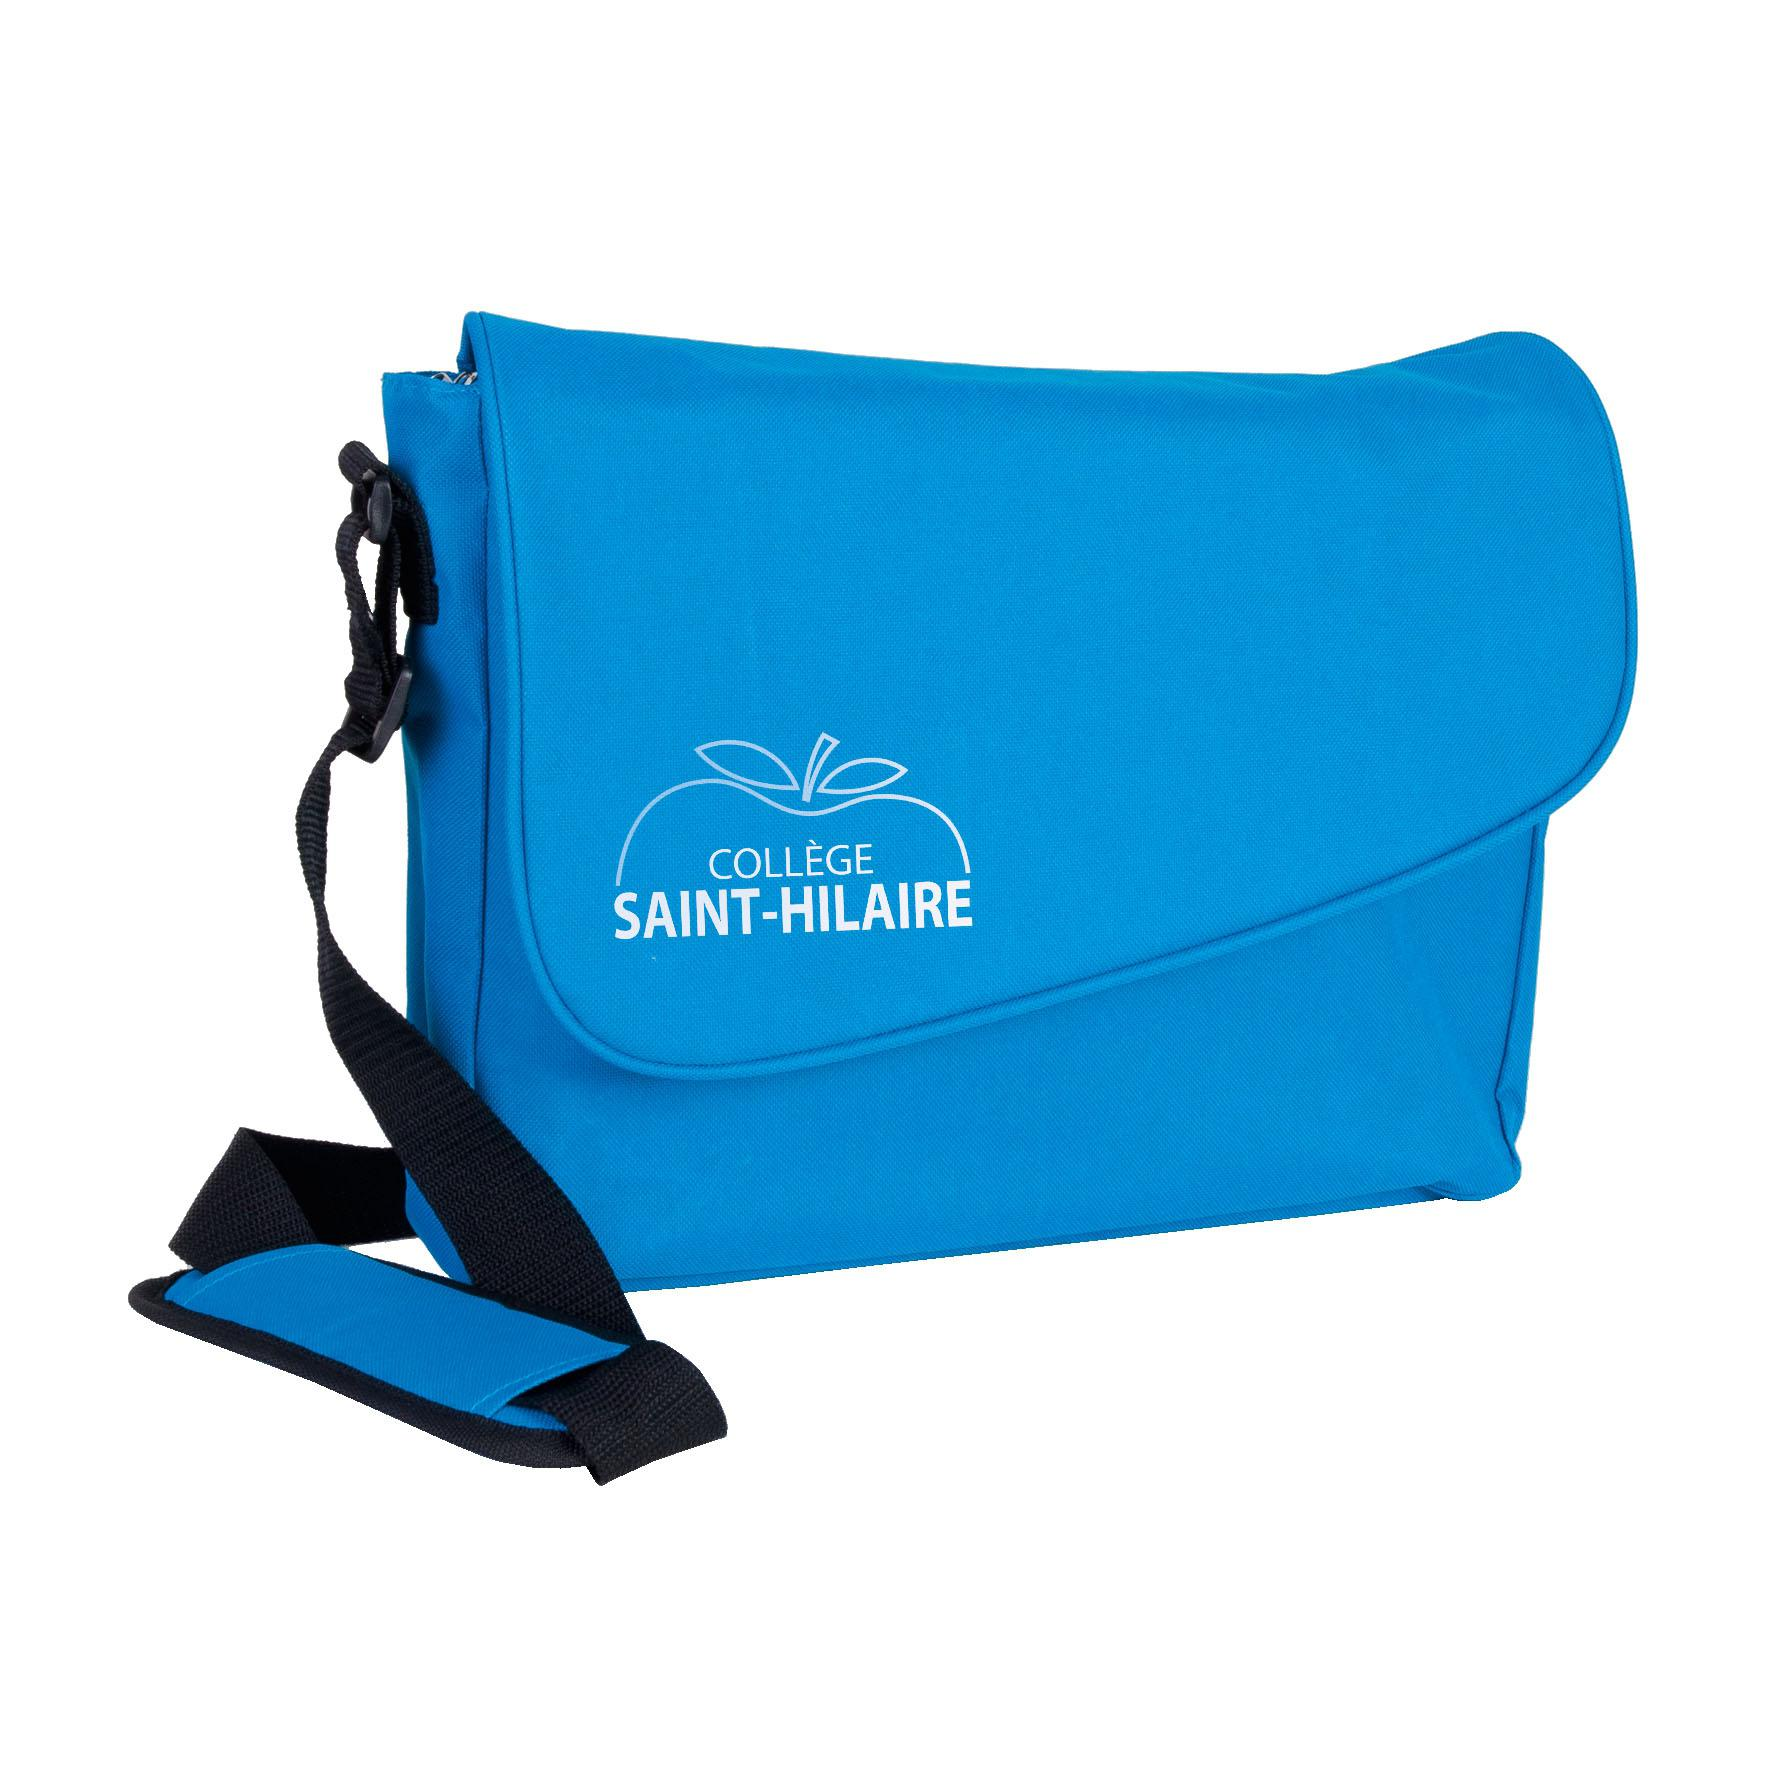 Sac Besace publicitaire College - Sac besace personnalisable